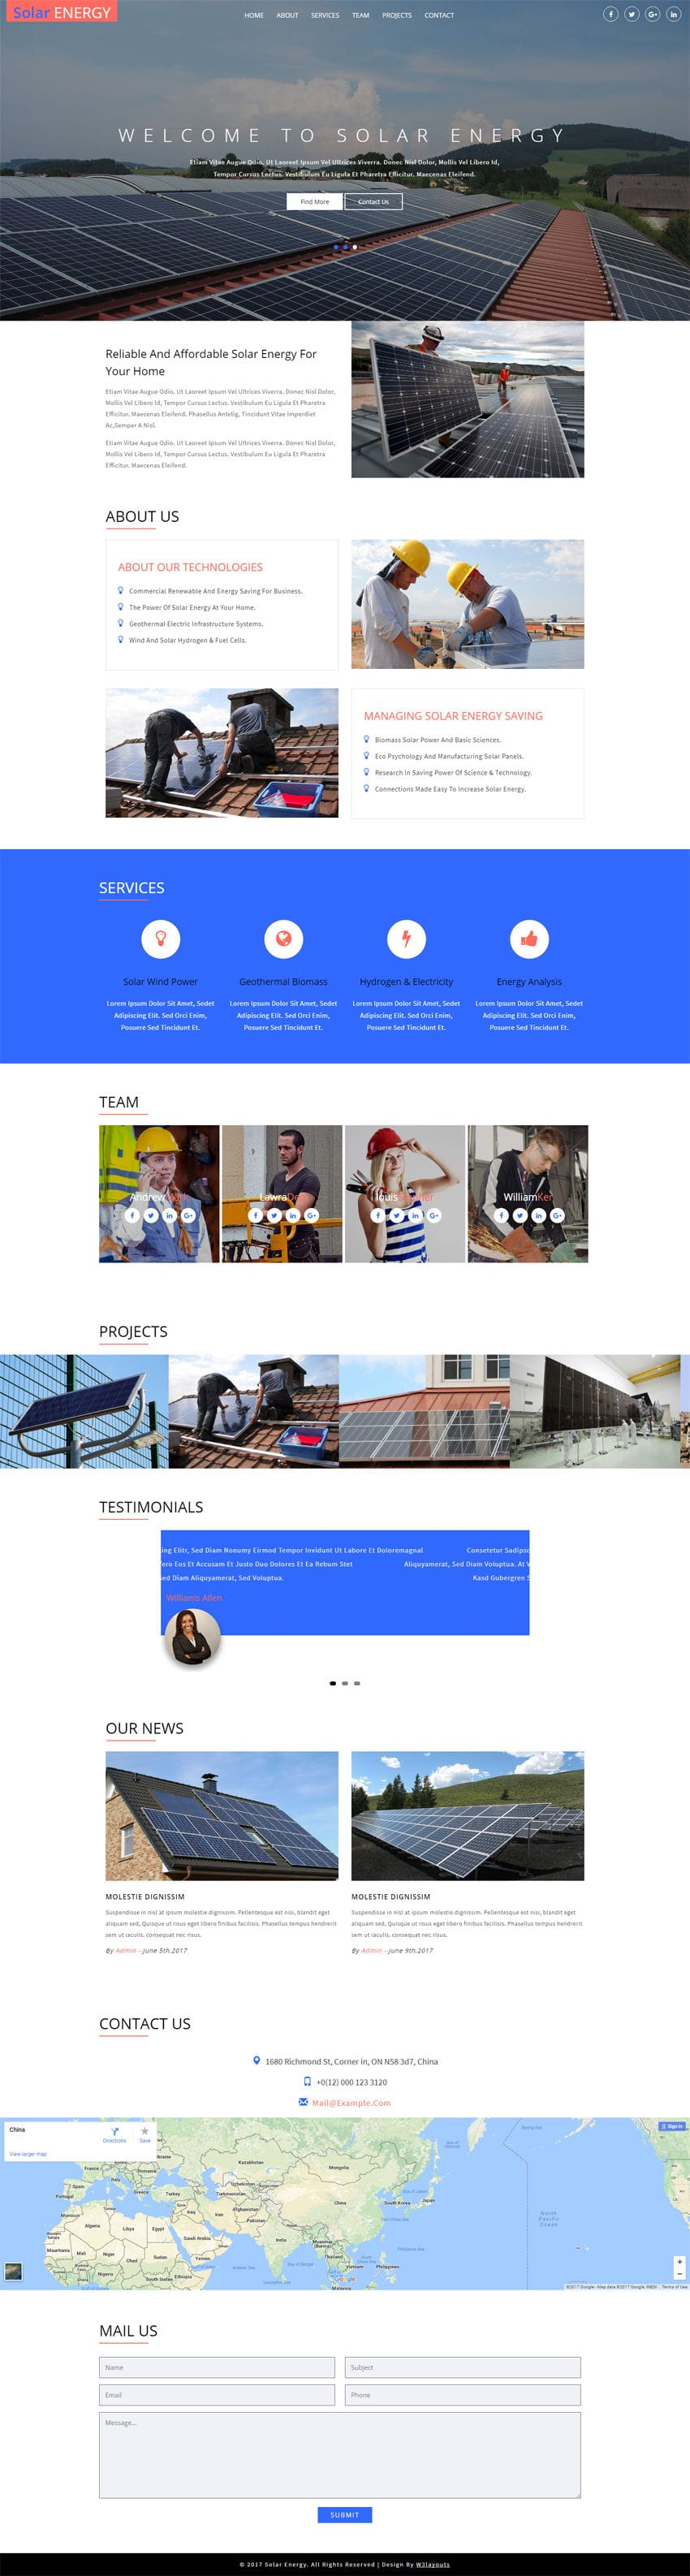 Download Solar Energy, an Industrial solar website template for free. It is entirely built in Bootstrap framework, HTML5, CSS3 and looks professional.